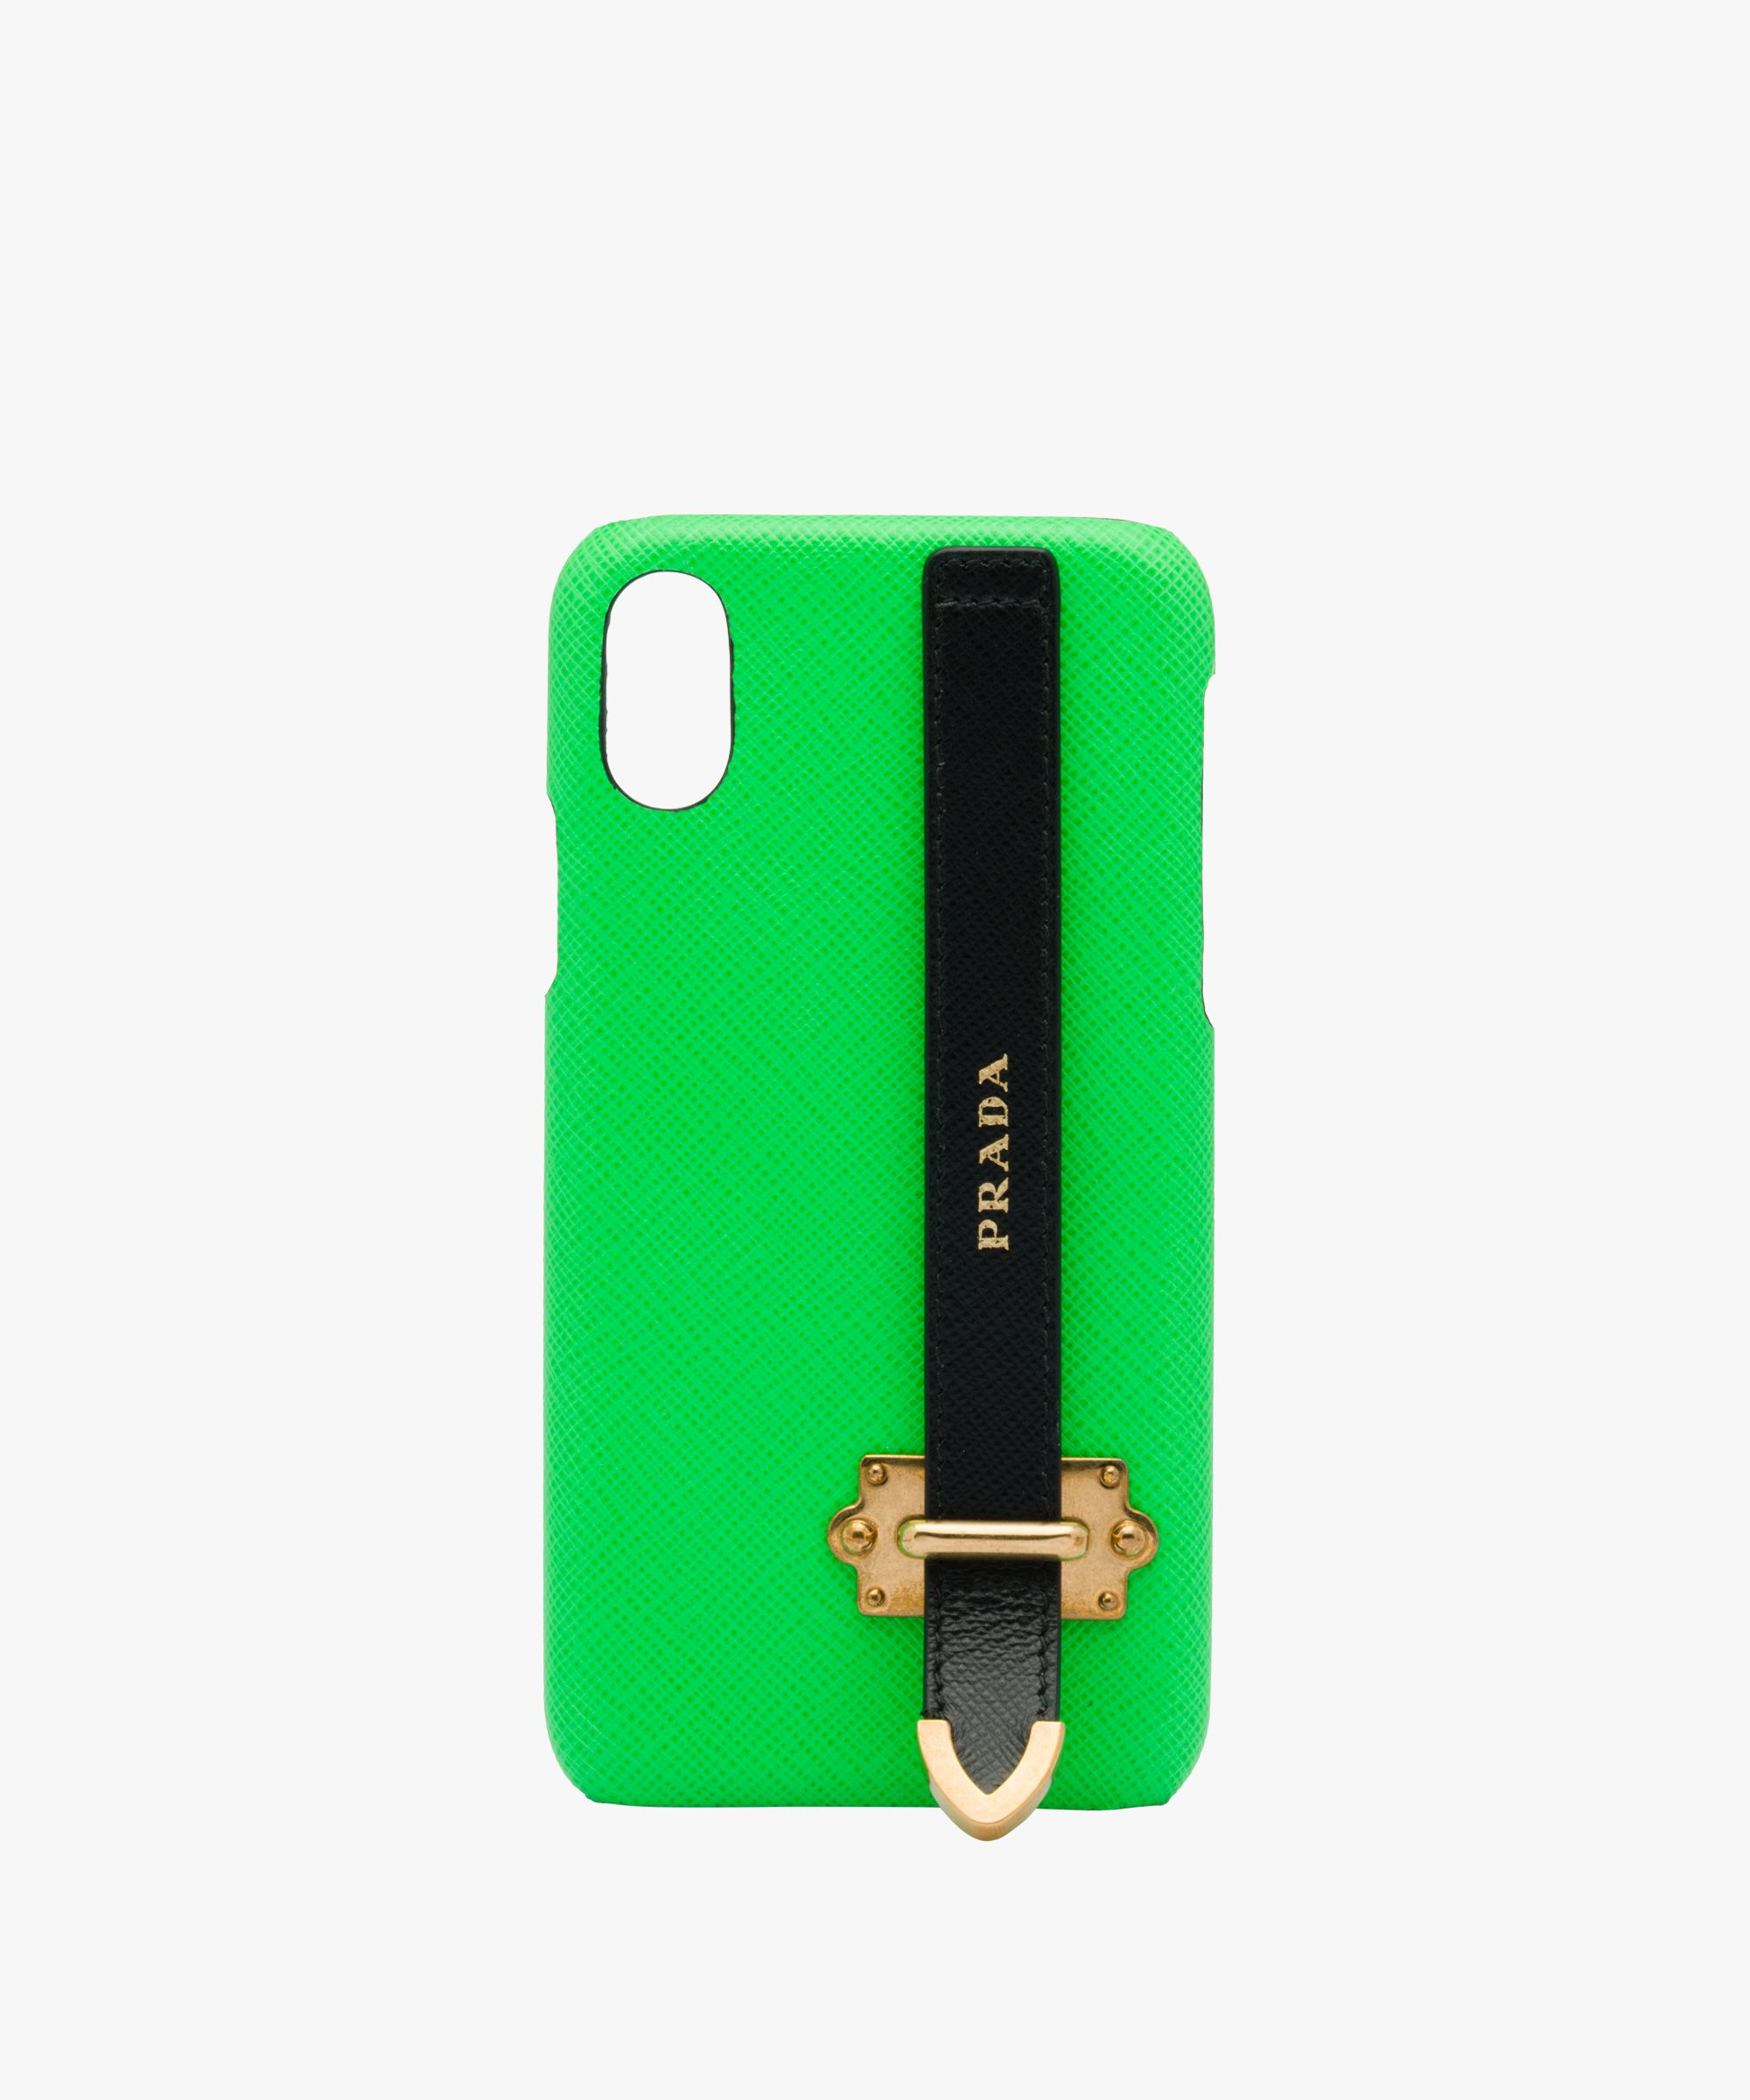 bebcca4370cf Prada - Fluorescent green Saffiano leather iPhone cover | ELECTRONIC ...